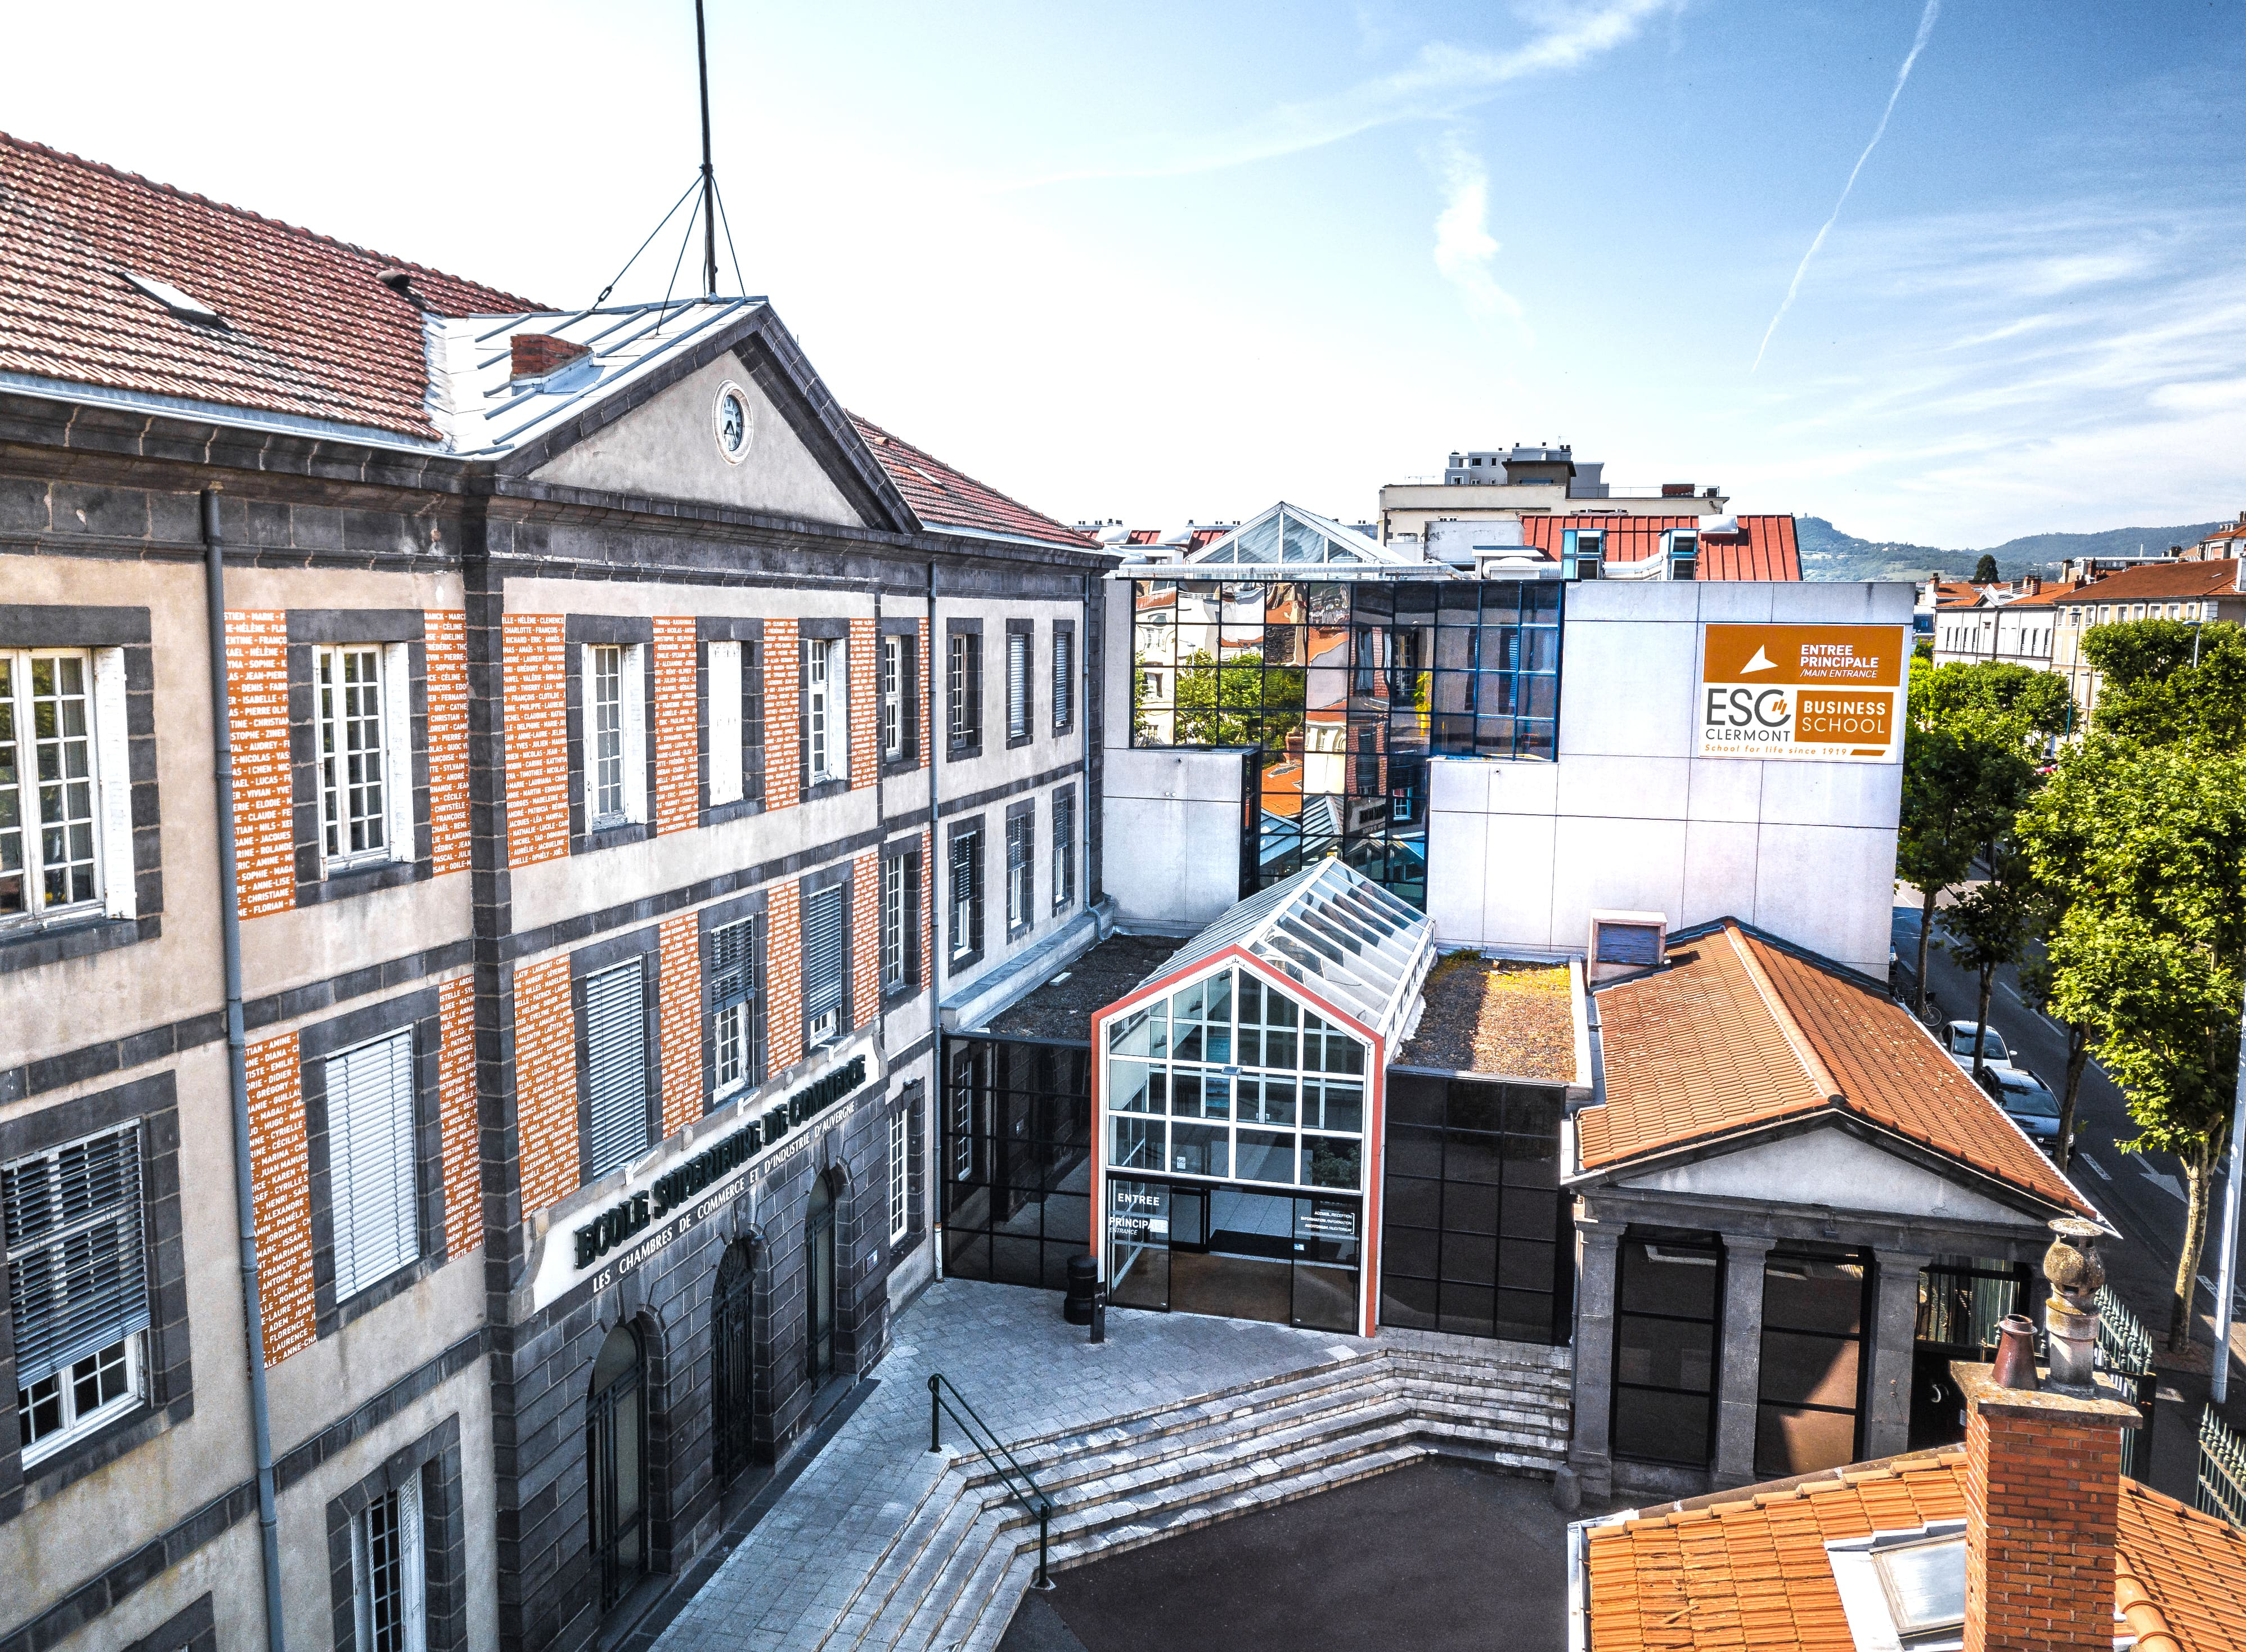 École D Architecture Clermont master of science in strategy & design for the anthropocene,  clermont-ferrand, france 2020